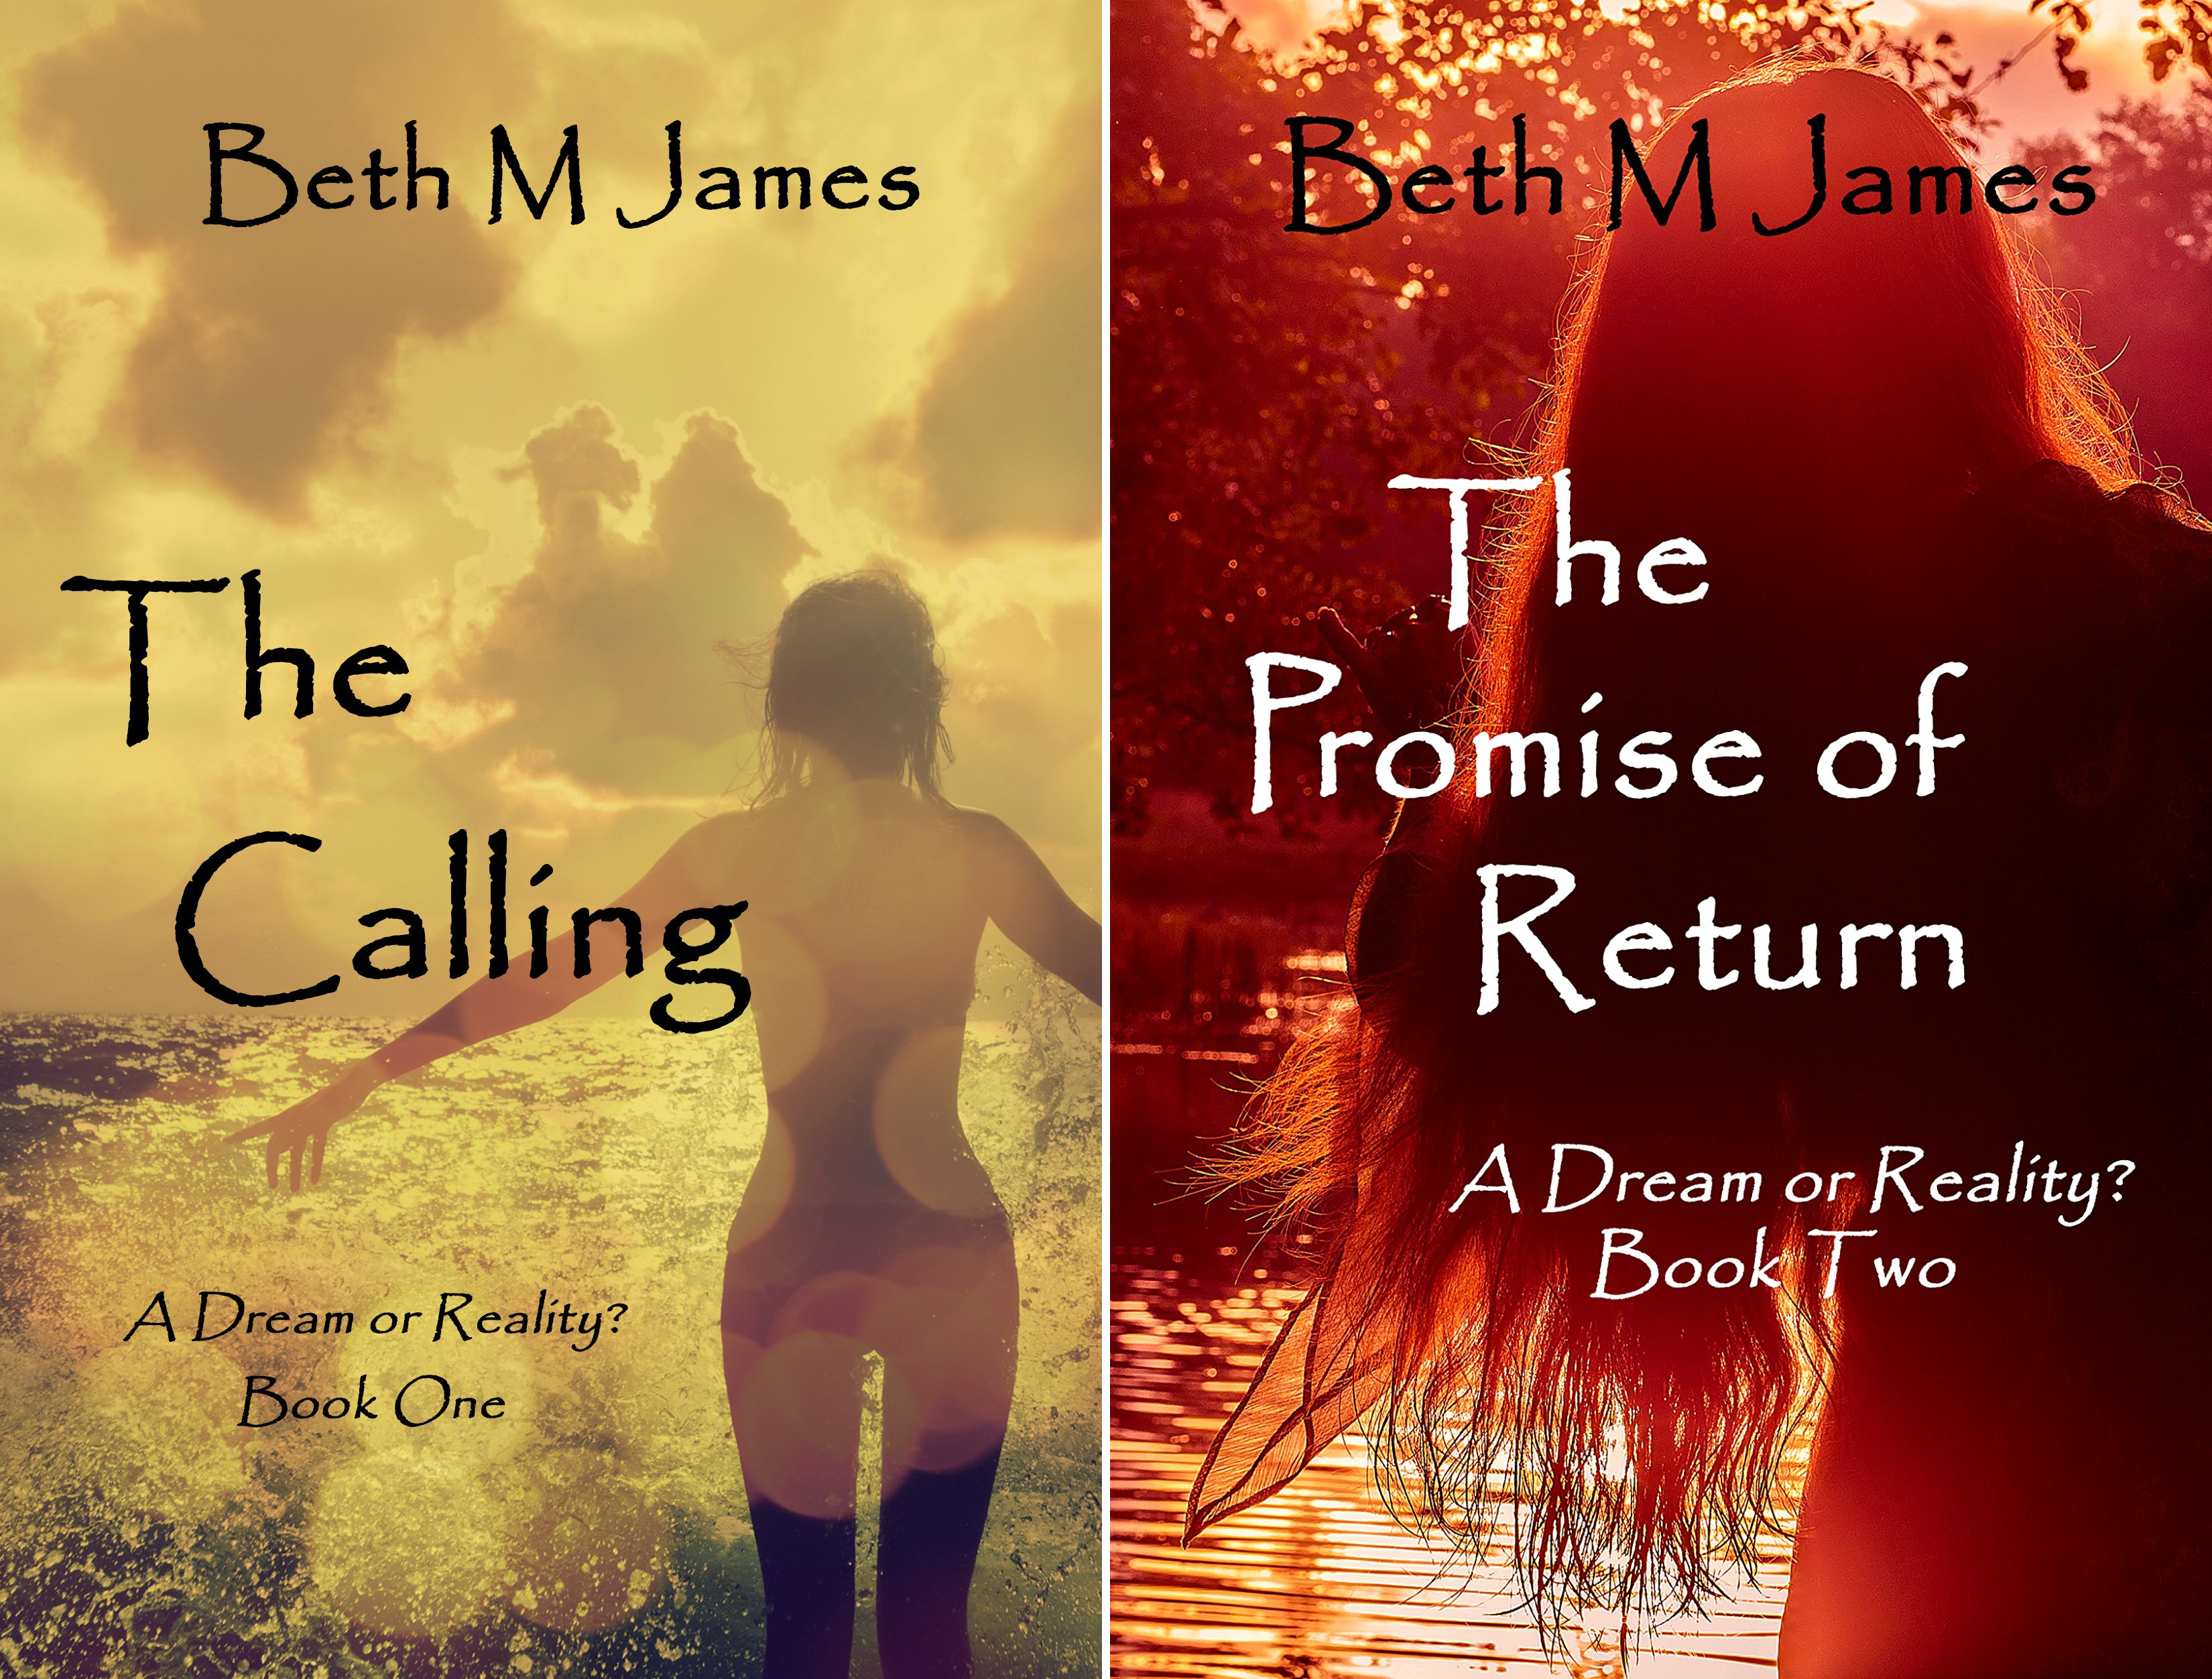 A Dream or Reality (2 Book Series)